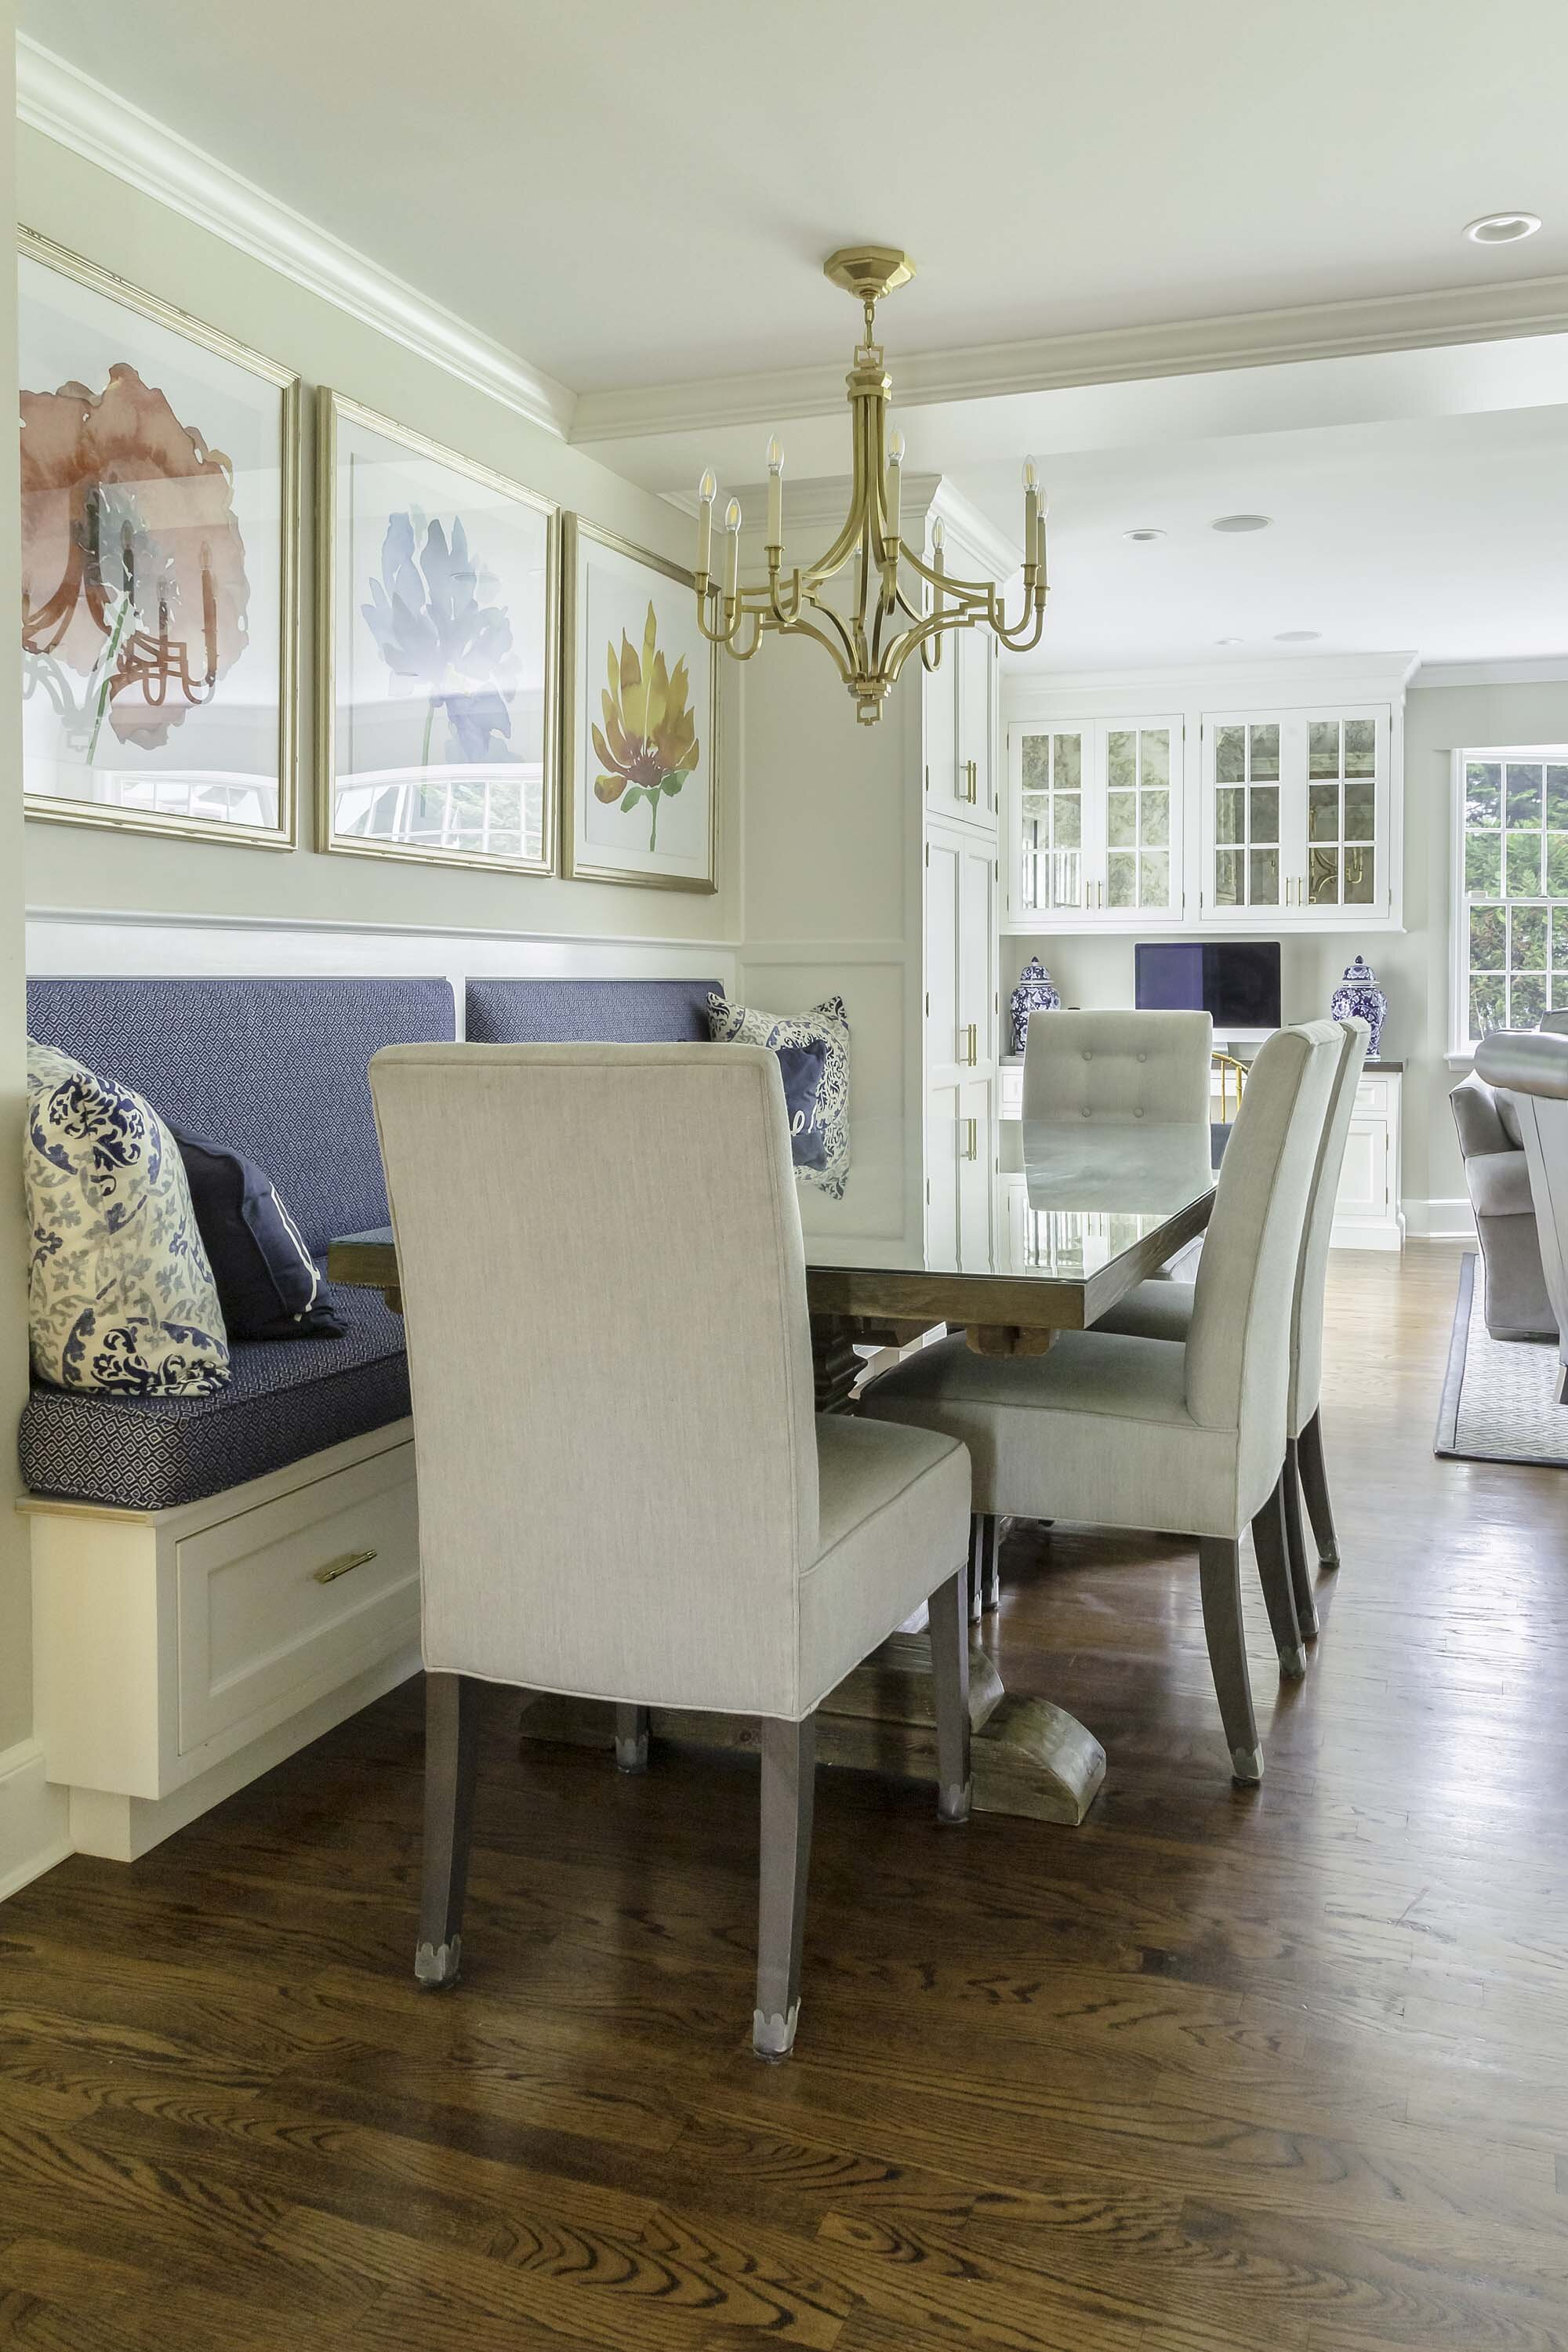 Custom banquette with storage drawers add extra seating in dining area